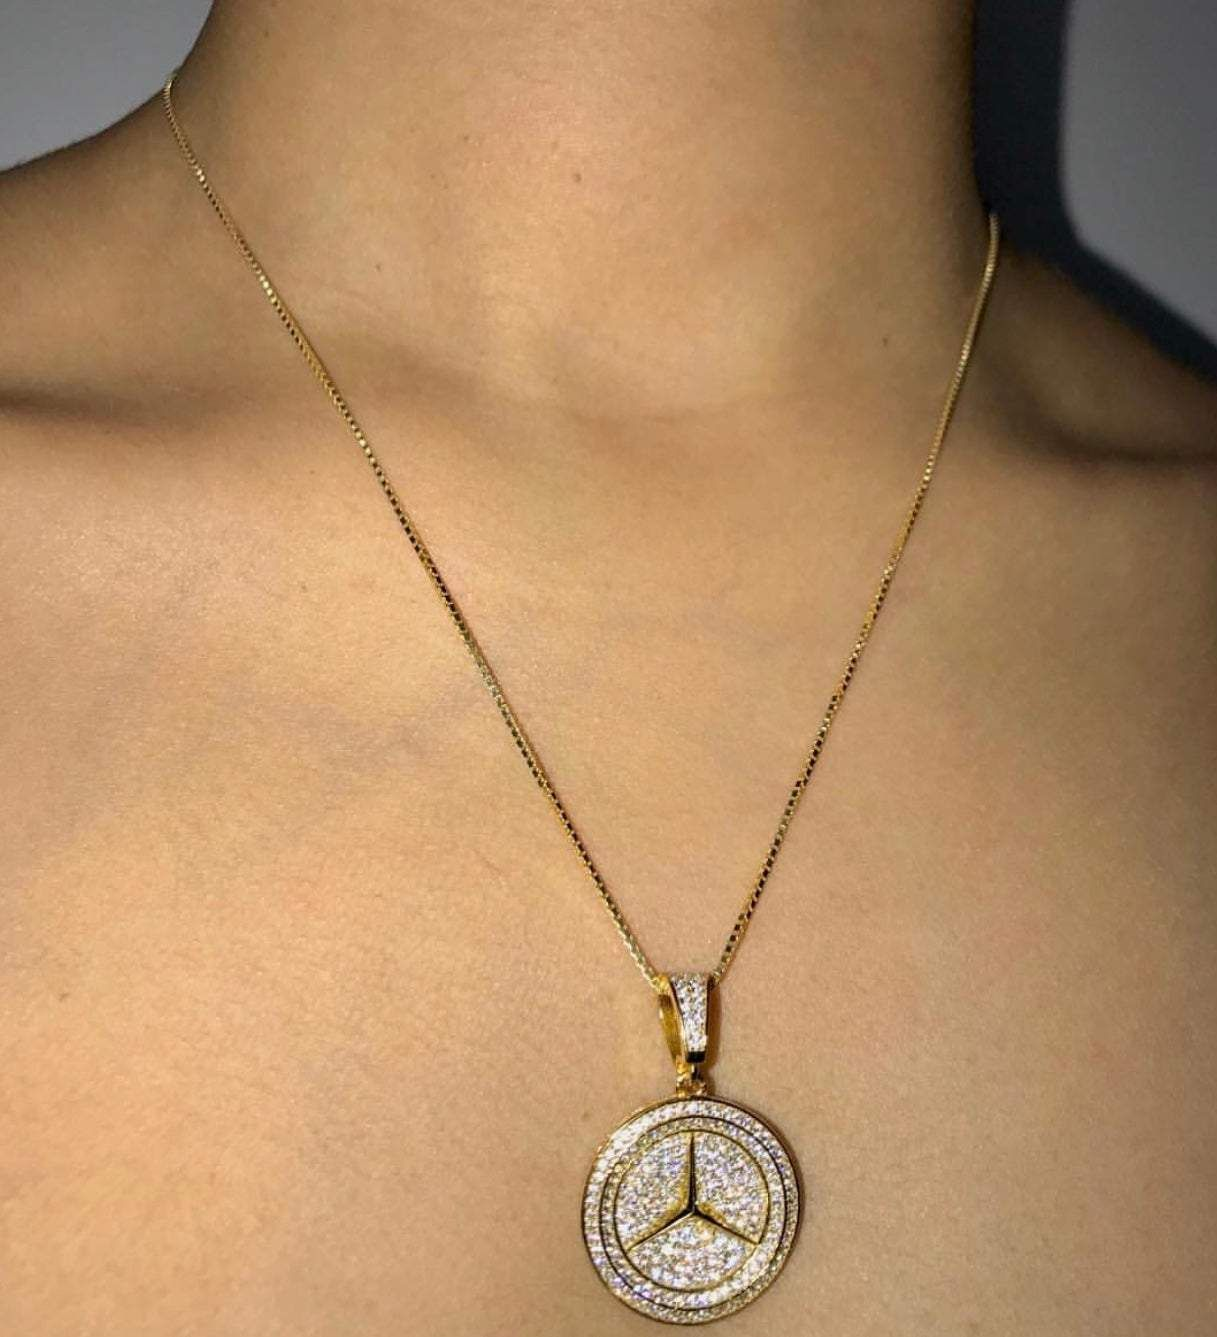 The pendant is made out gold filled and the necklace is